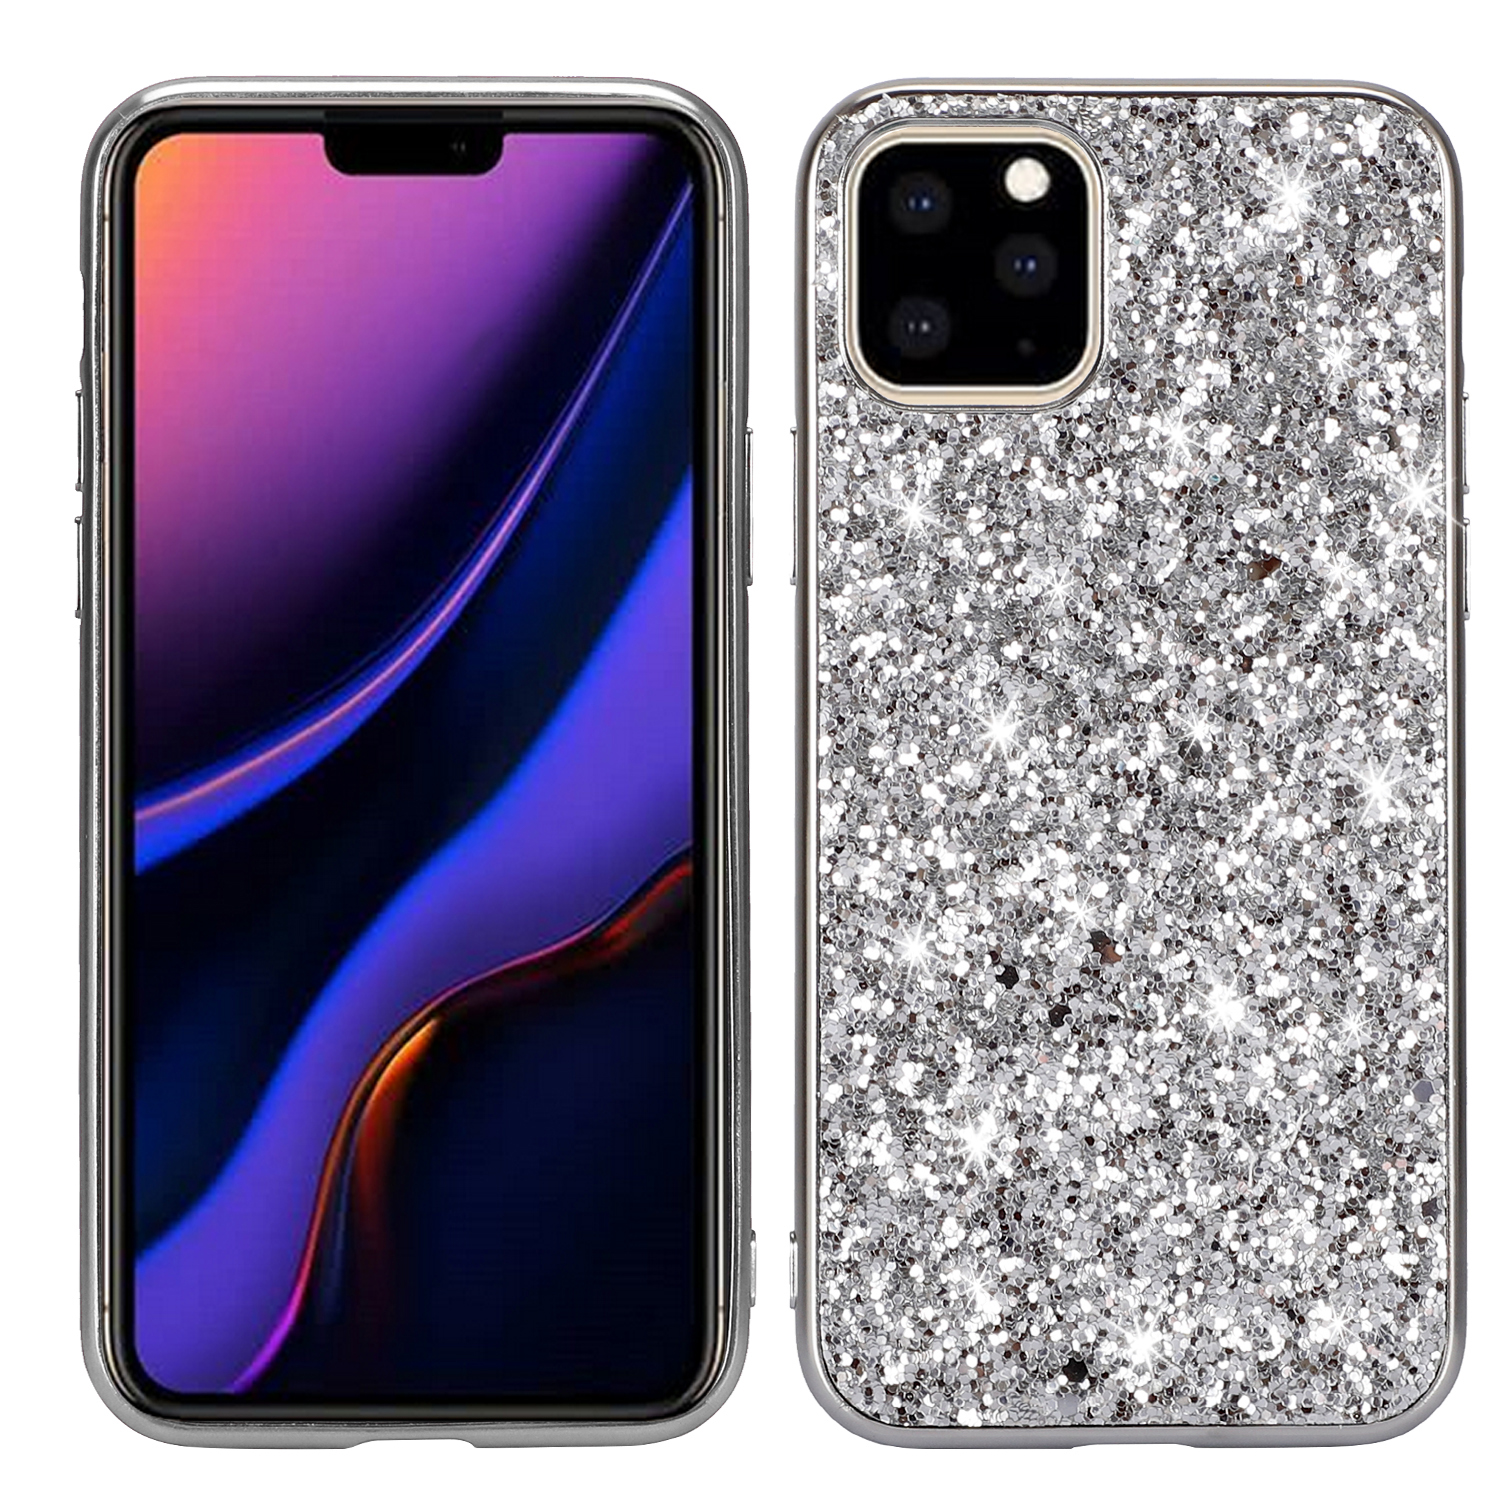 Shiny Glitter Girls Case for iPhone 11/11 Pro/11 Pro Max 7